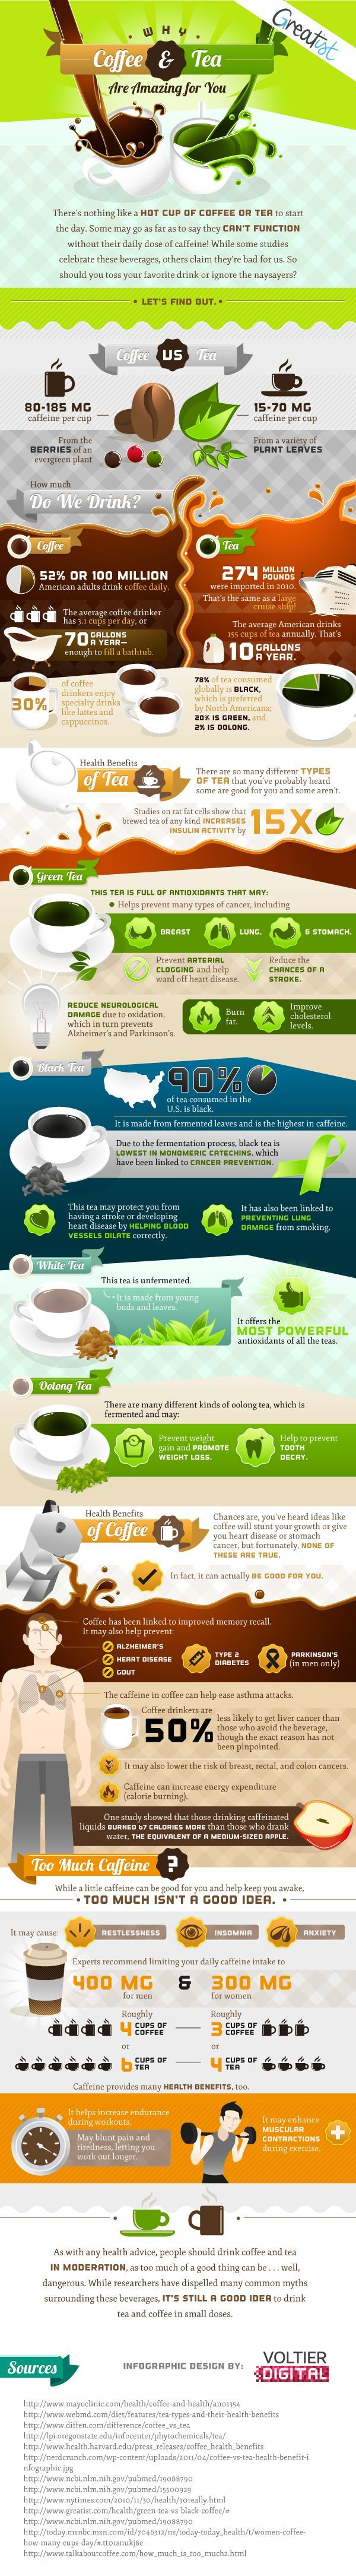 Why Coffee and Tea are Amazing for You!